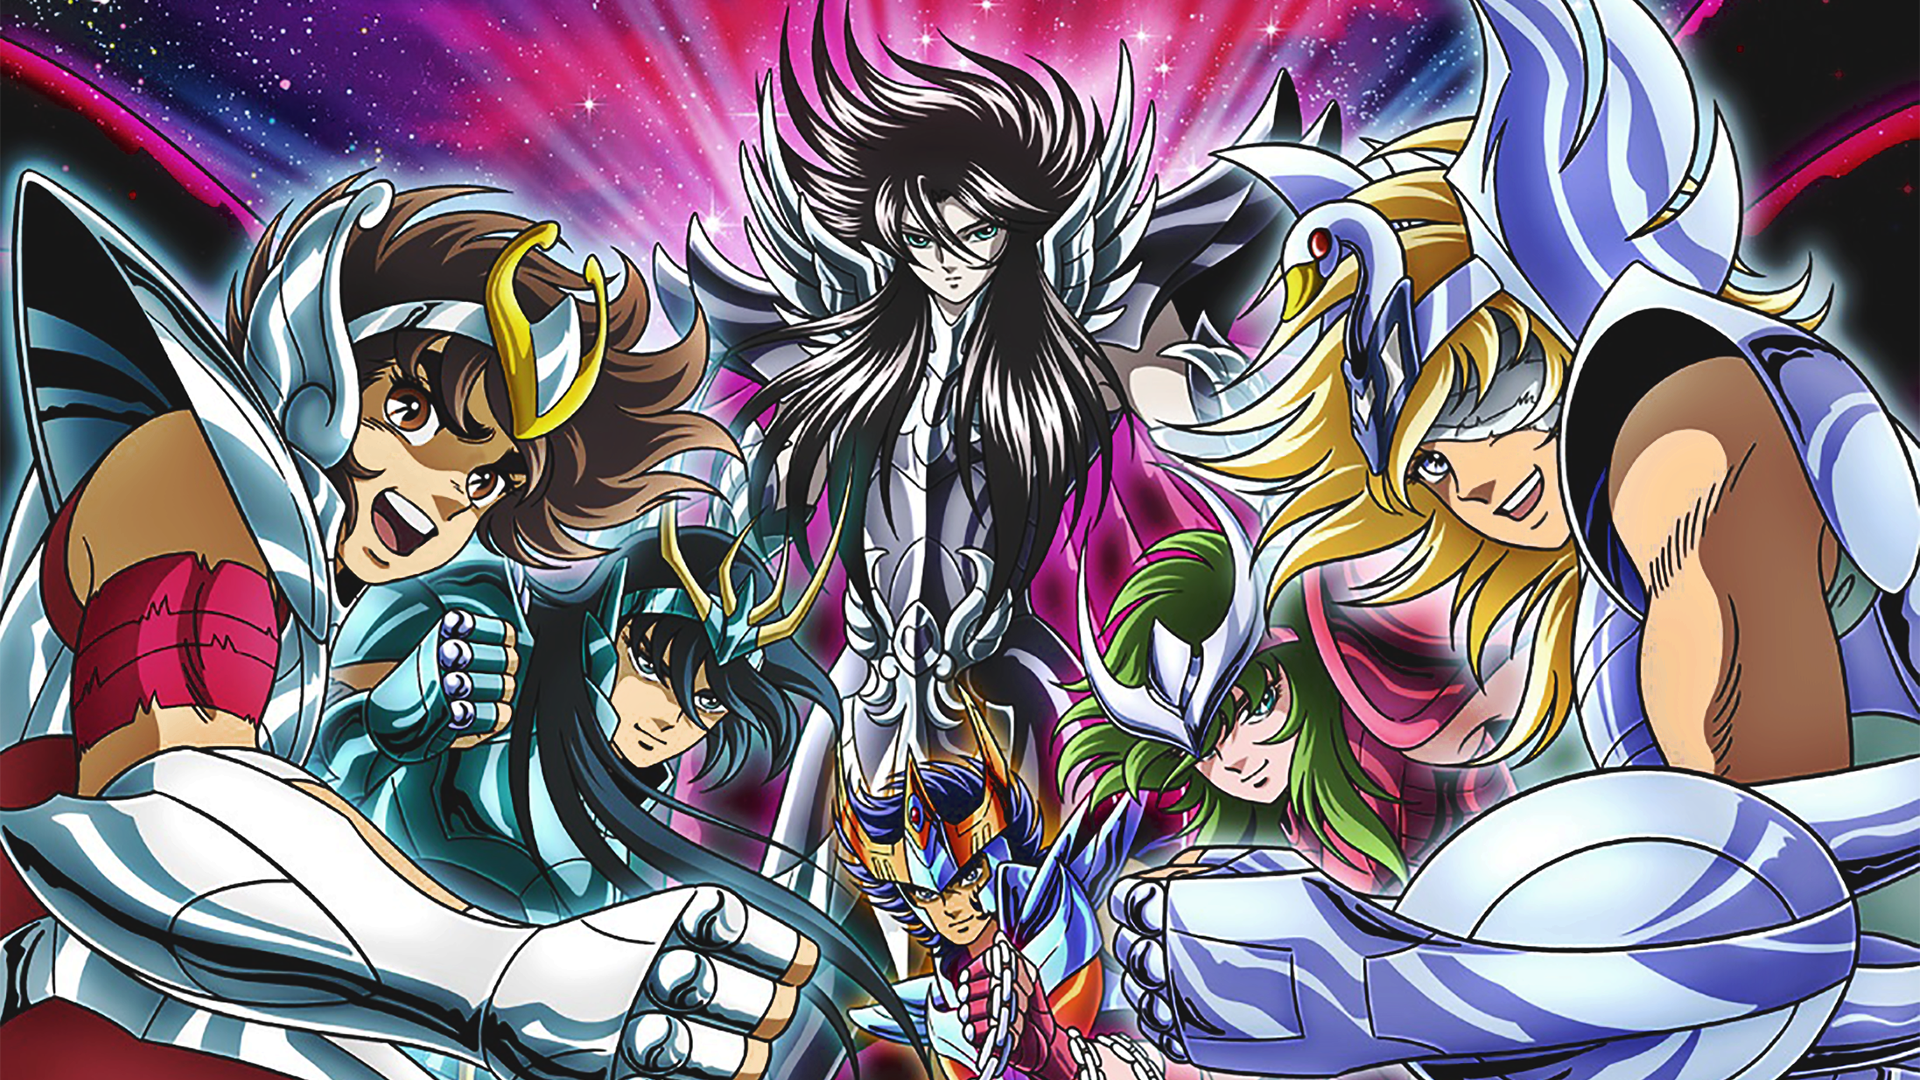 120 Saint Seiya Hd Wallpapers Background Images Wallpaper Abyss